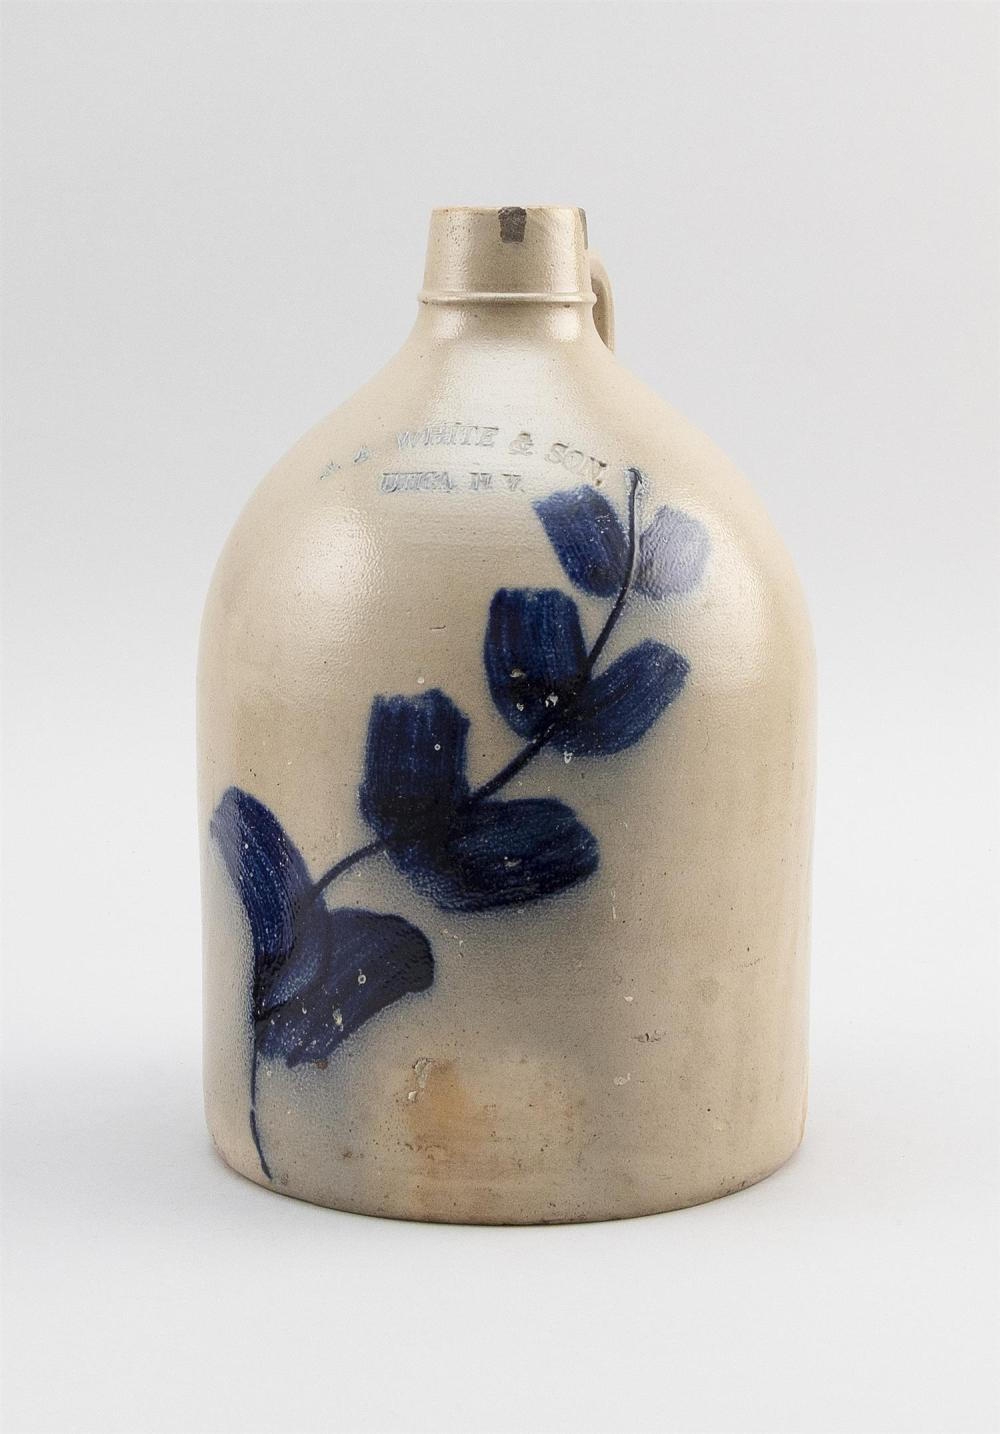 """STONEWARE CROCK Incisced mark for """"A.A. White & Son Utica N.Y."""" above bold cobalt blue decoration. Height 11""""."""